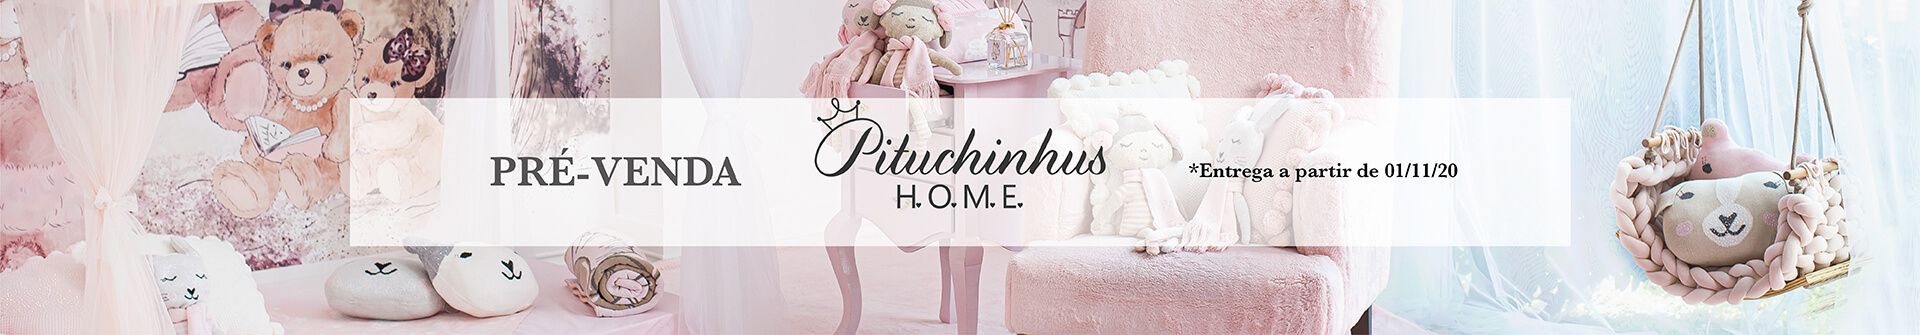 PITUCHINHUS HOME